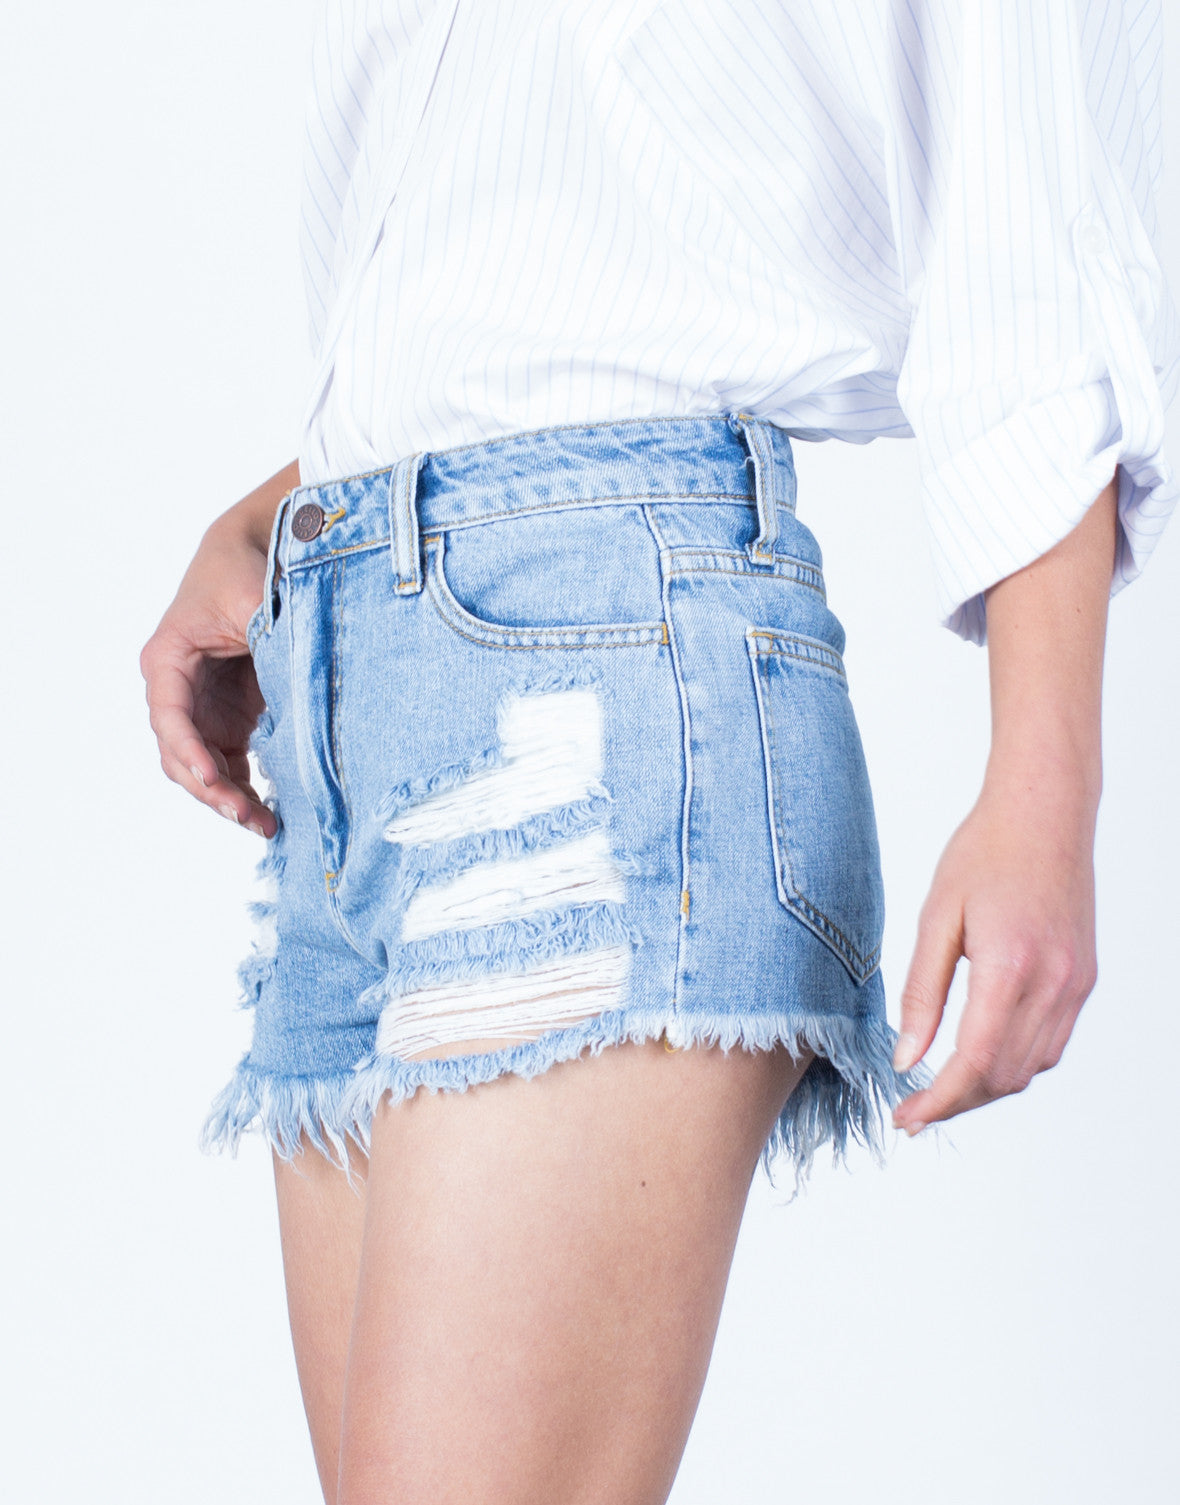 Detail of Frayed and Ripped Denim Shorts